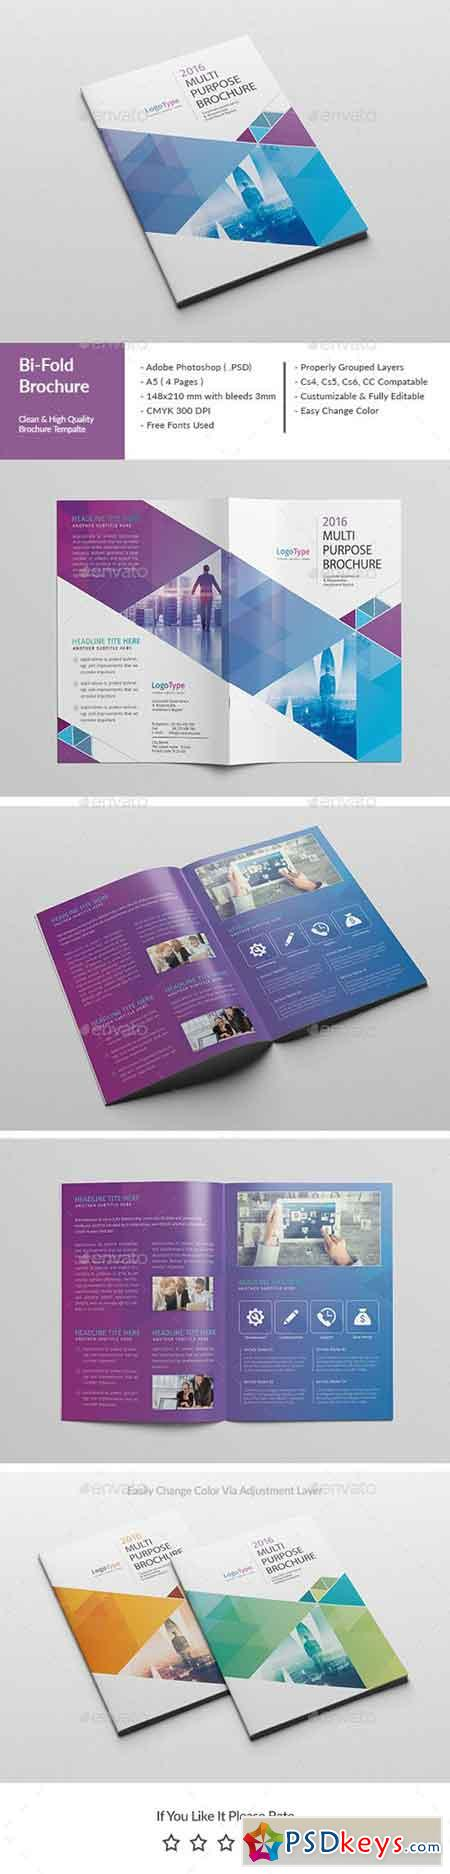 Corporate bi fold brochure 04 15018098 free download for Corporate bi fold brochure template